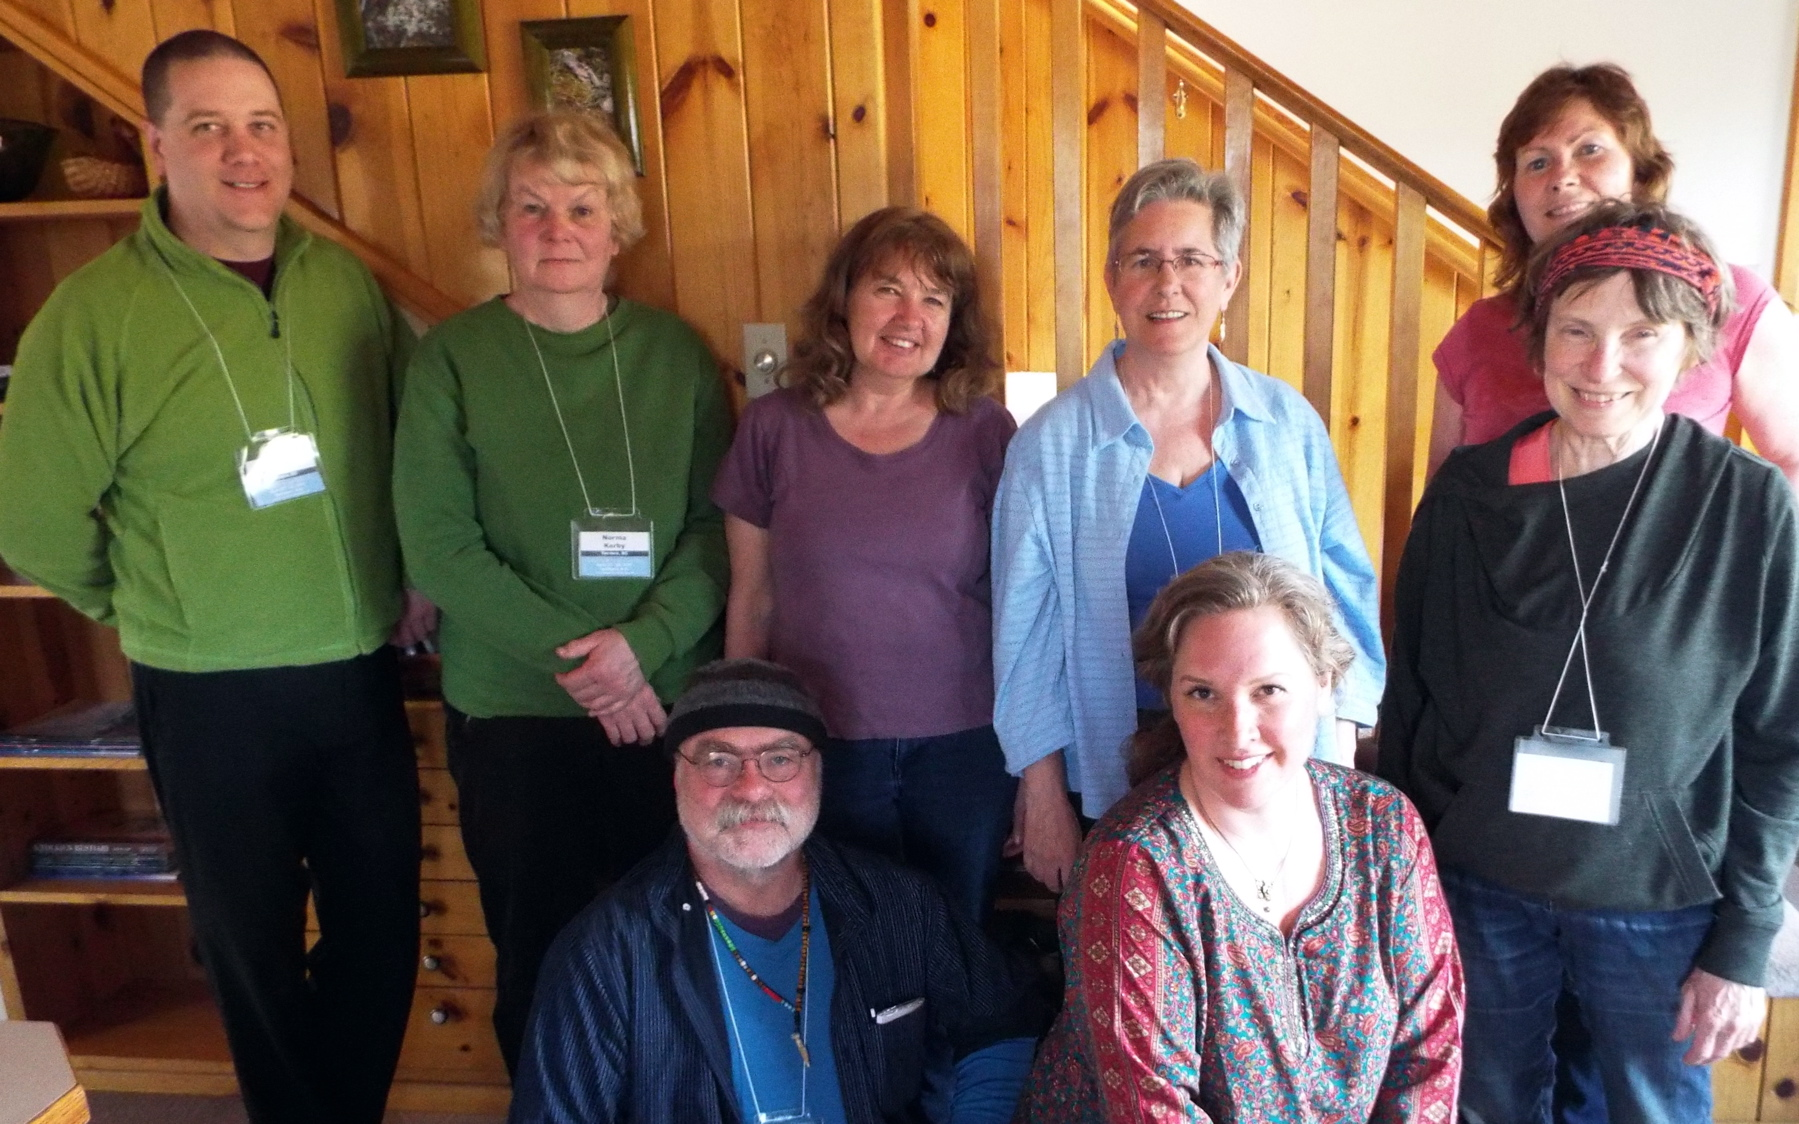 2017 Rural Writers in Residence, poetry reversals workshop. Back row, left to right: Harold Feddersen, Norma Kerby, Joan Conway, Leslie Prpich, Adrienne Fitzpatrick. Front: Baxter Huston, facilitator extraordinaire Elee Kraljii Gardiner, Suzanne Ross